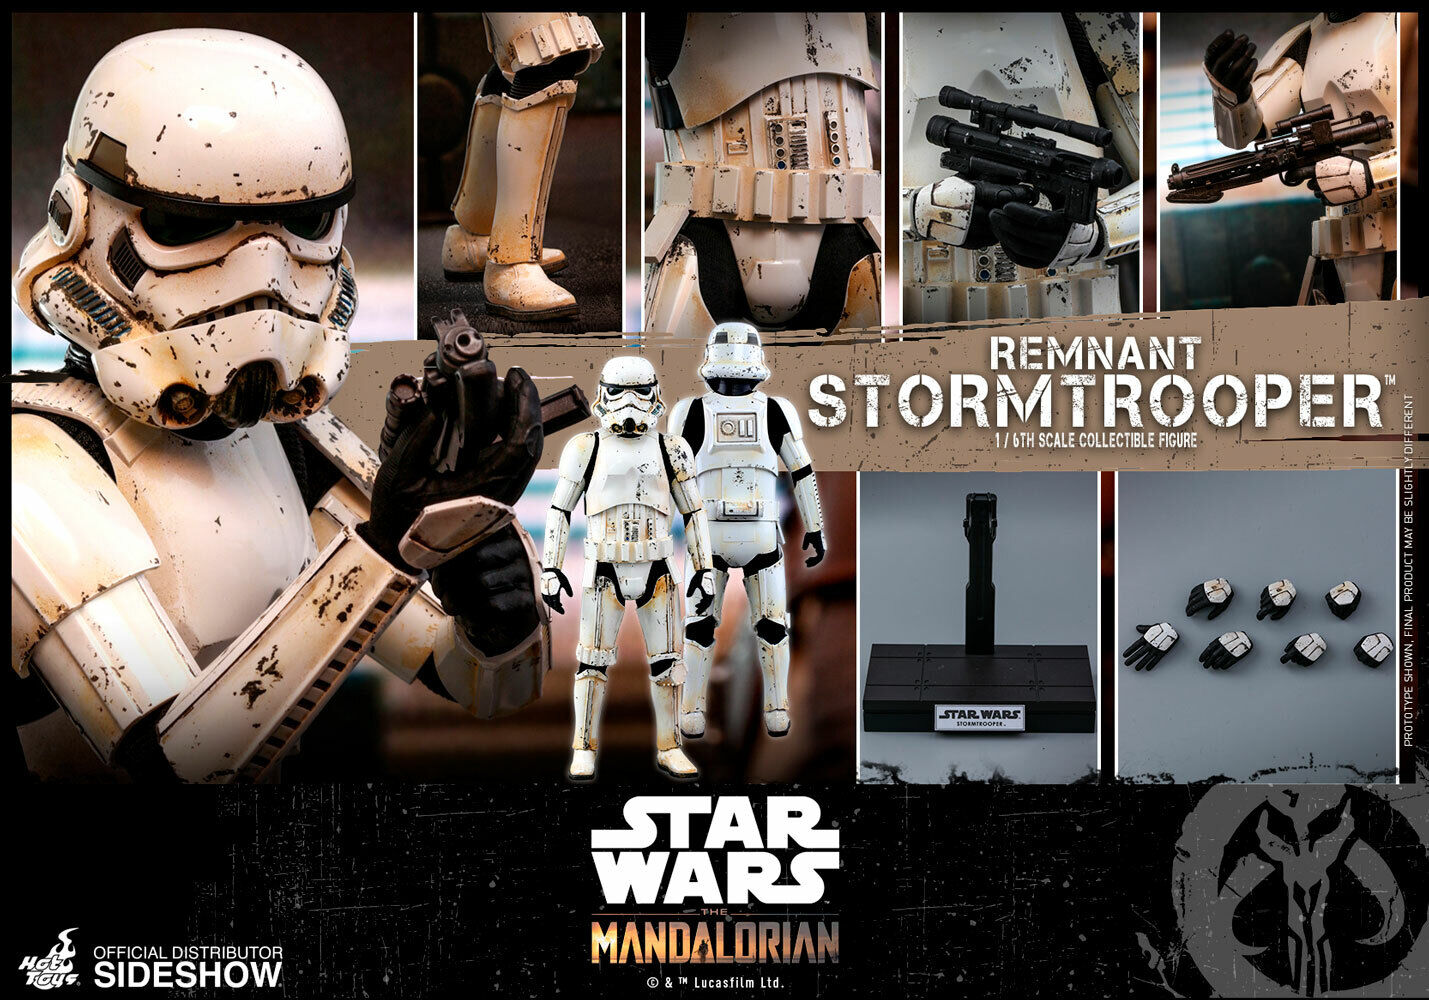 Sideshow Hot Toys Star Wars Remnant Stormtrooper 1/6 Scale Figure TMS011 on eBay thumbnail